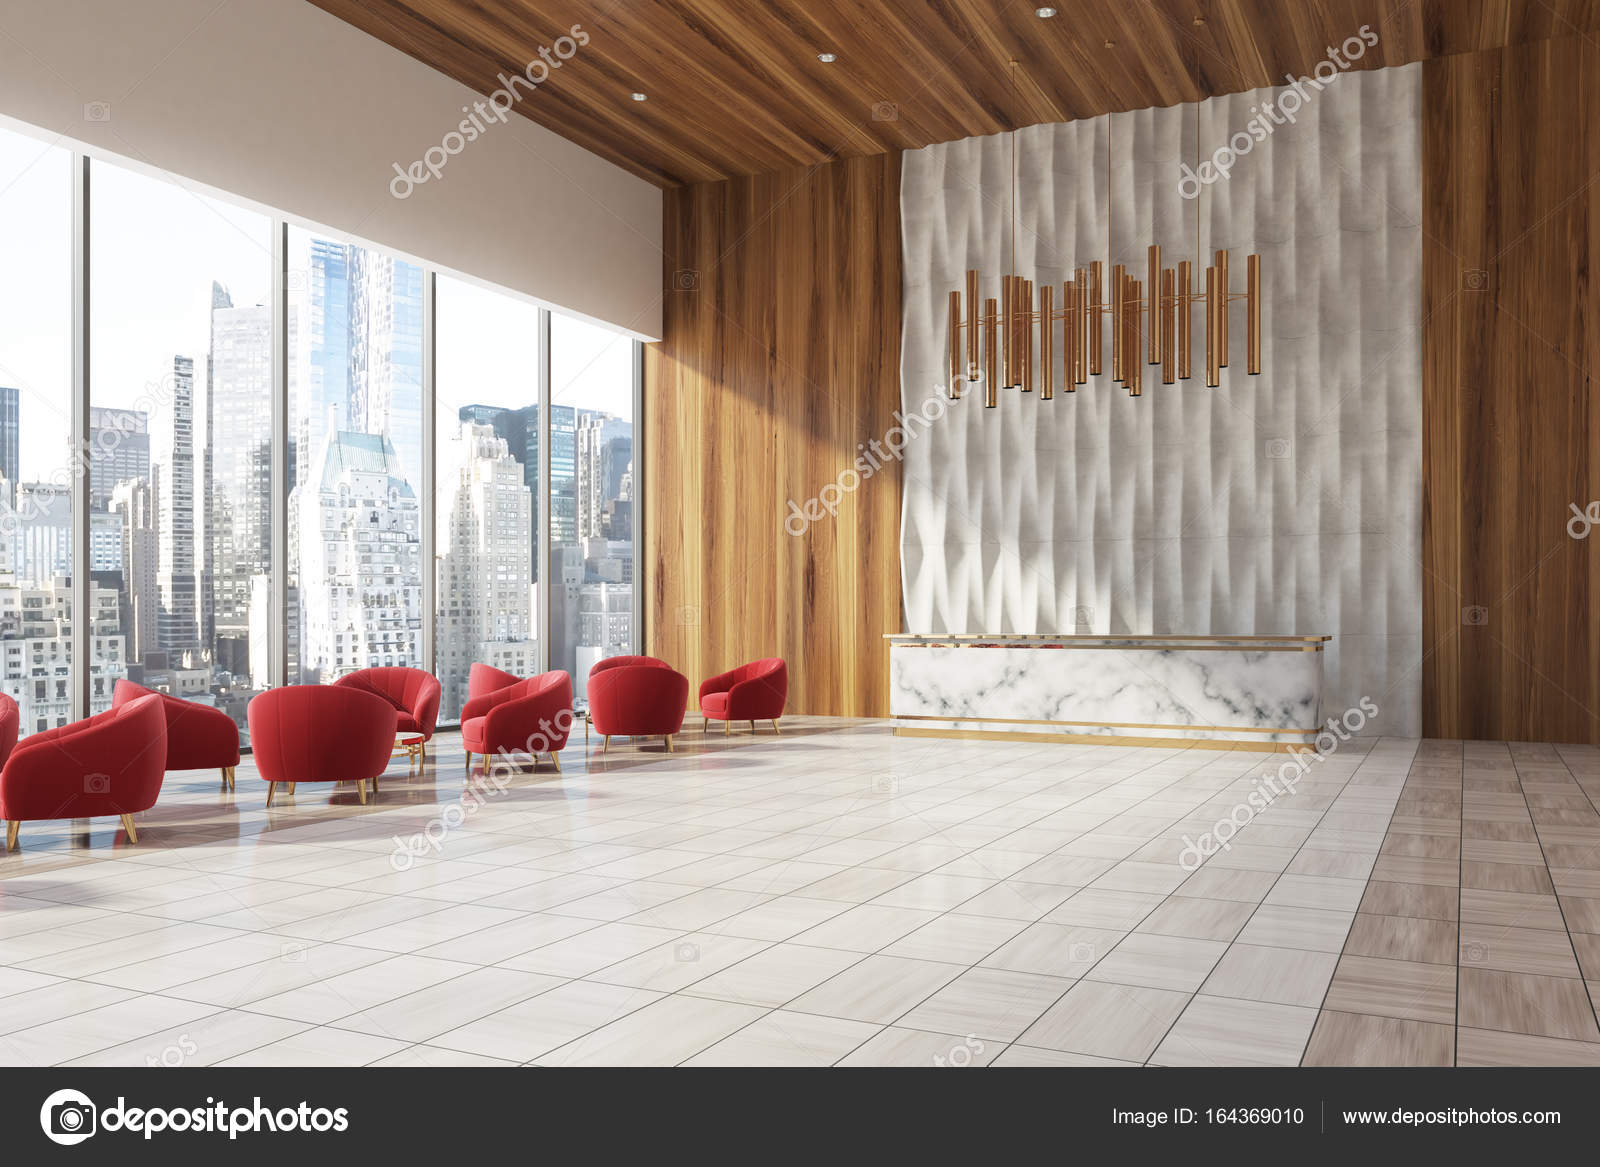 wooden office. Side View Of A Marble Reception Desk Standing In White And Wooden Office Lobby With Red Armchair The Waiting Area. 3d Rendering Mock Up \u2014 Photo By L